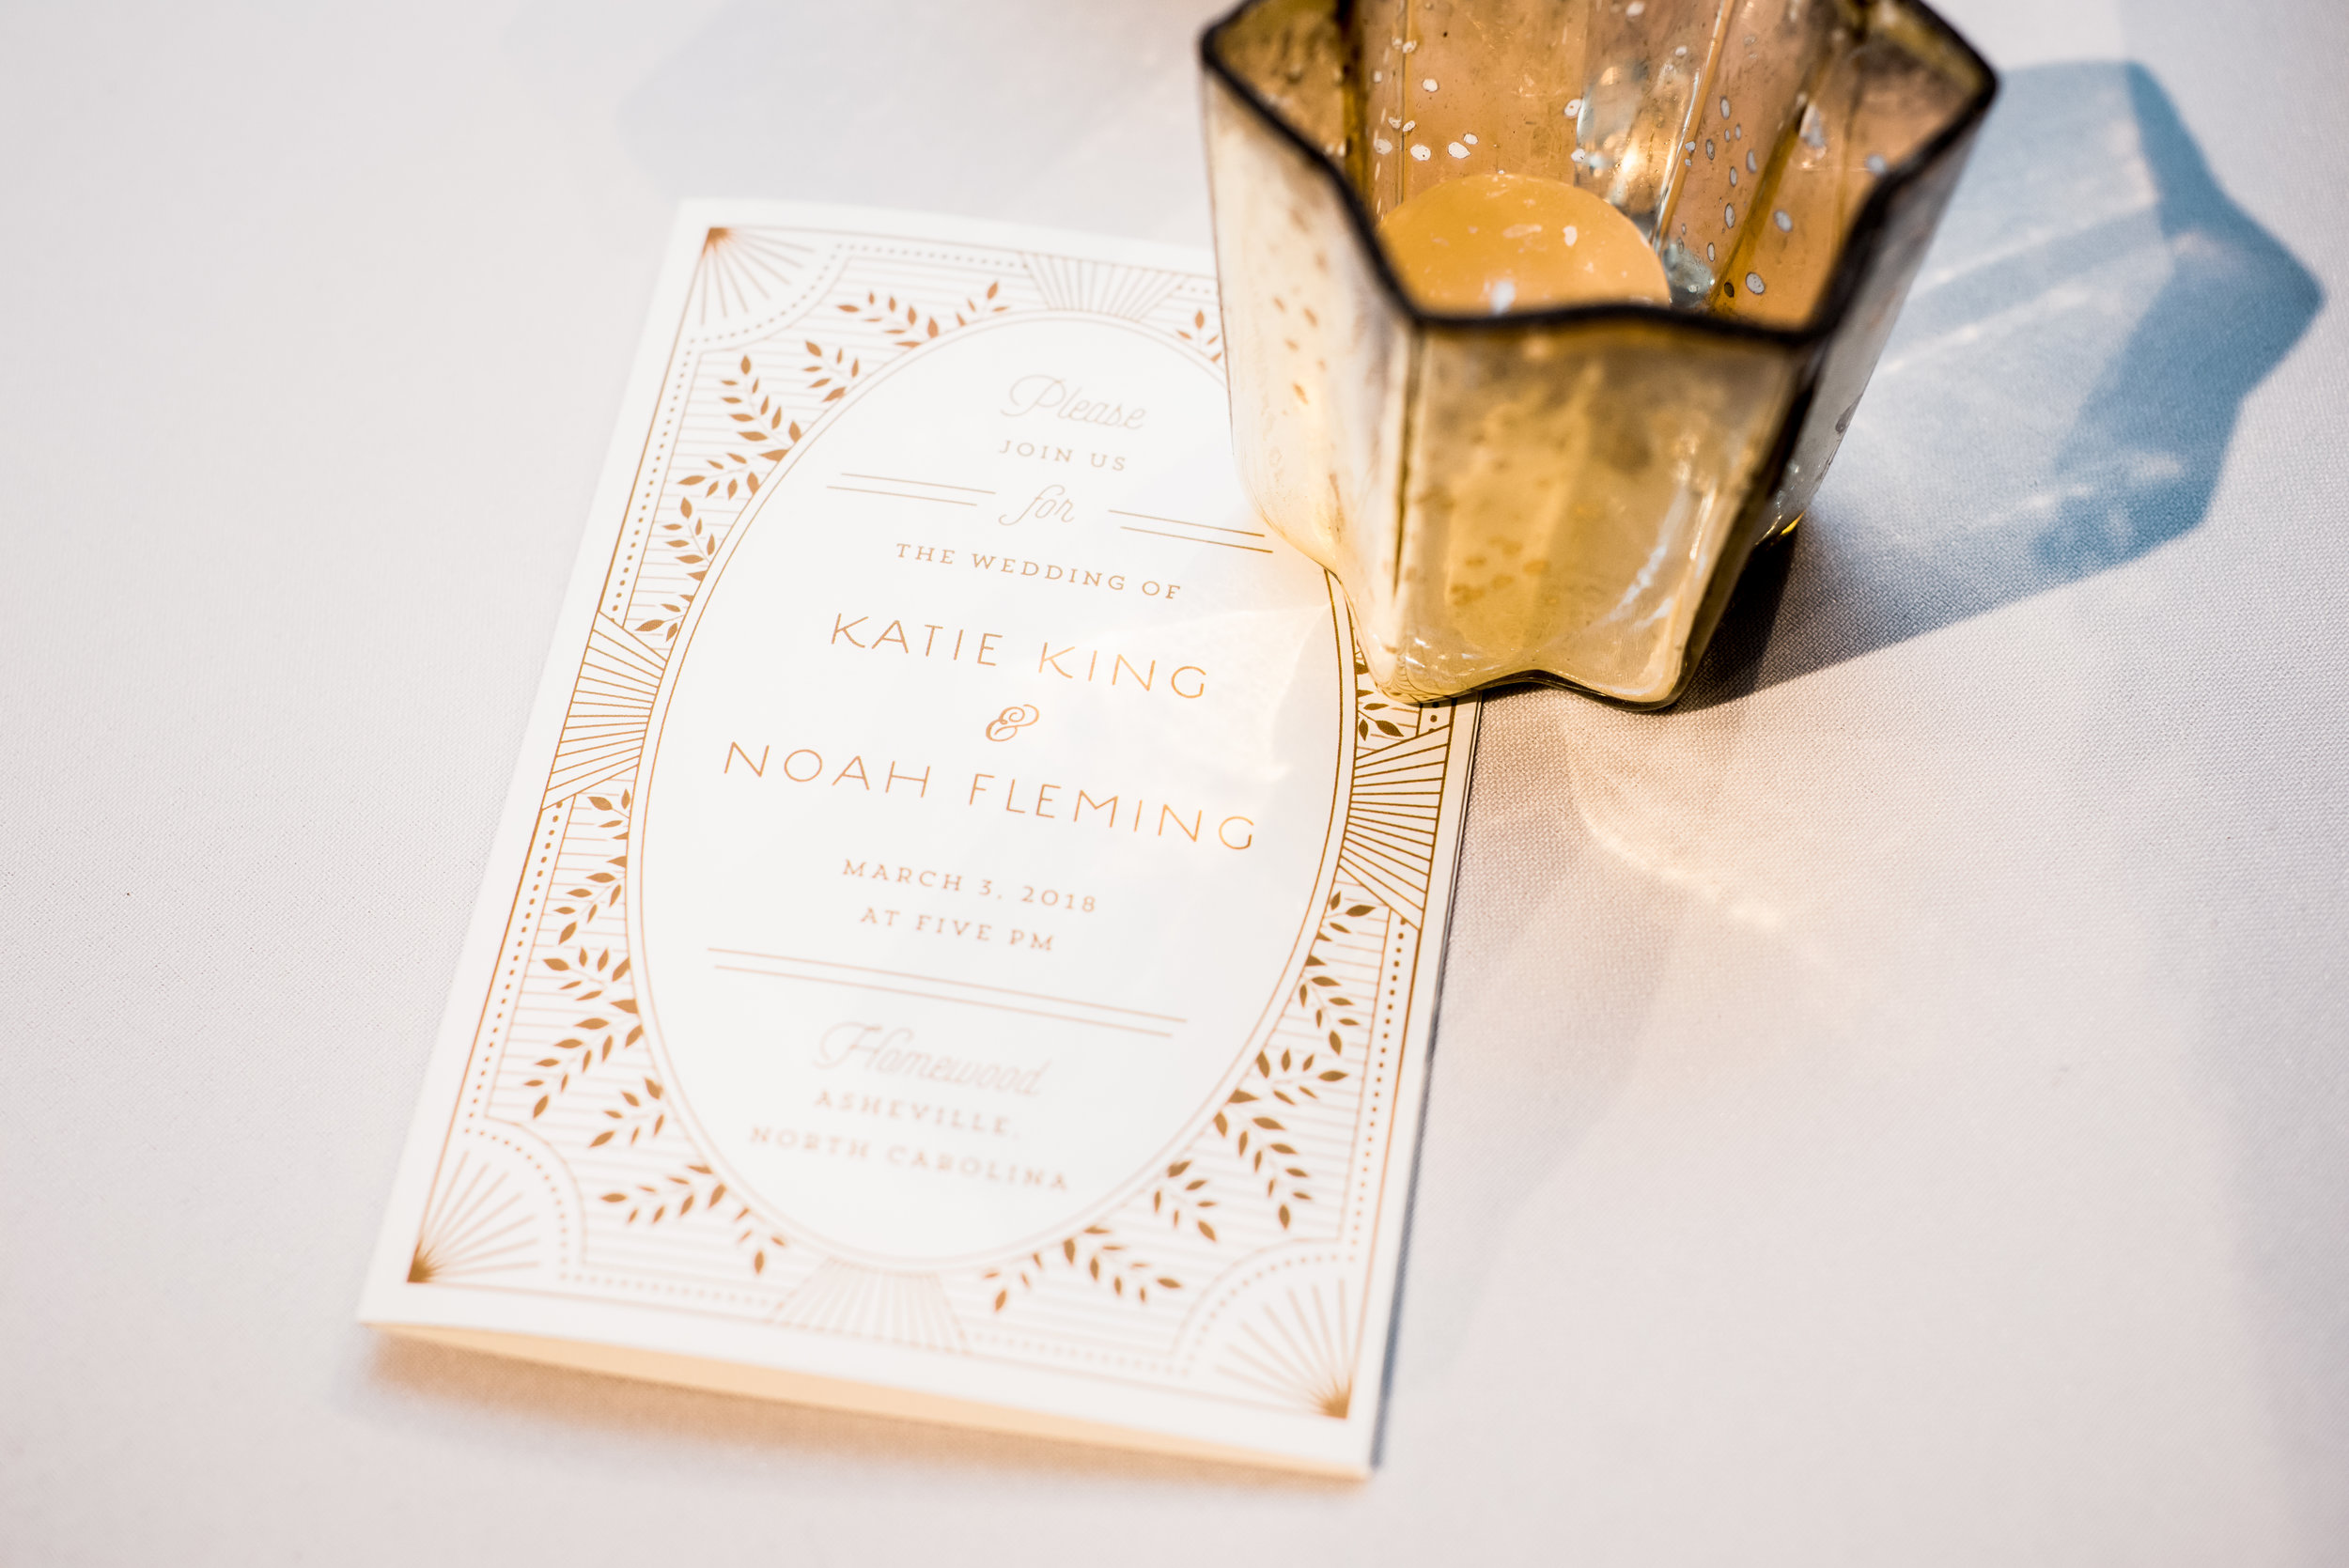 design inspiration from our Minted invitations